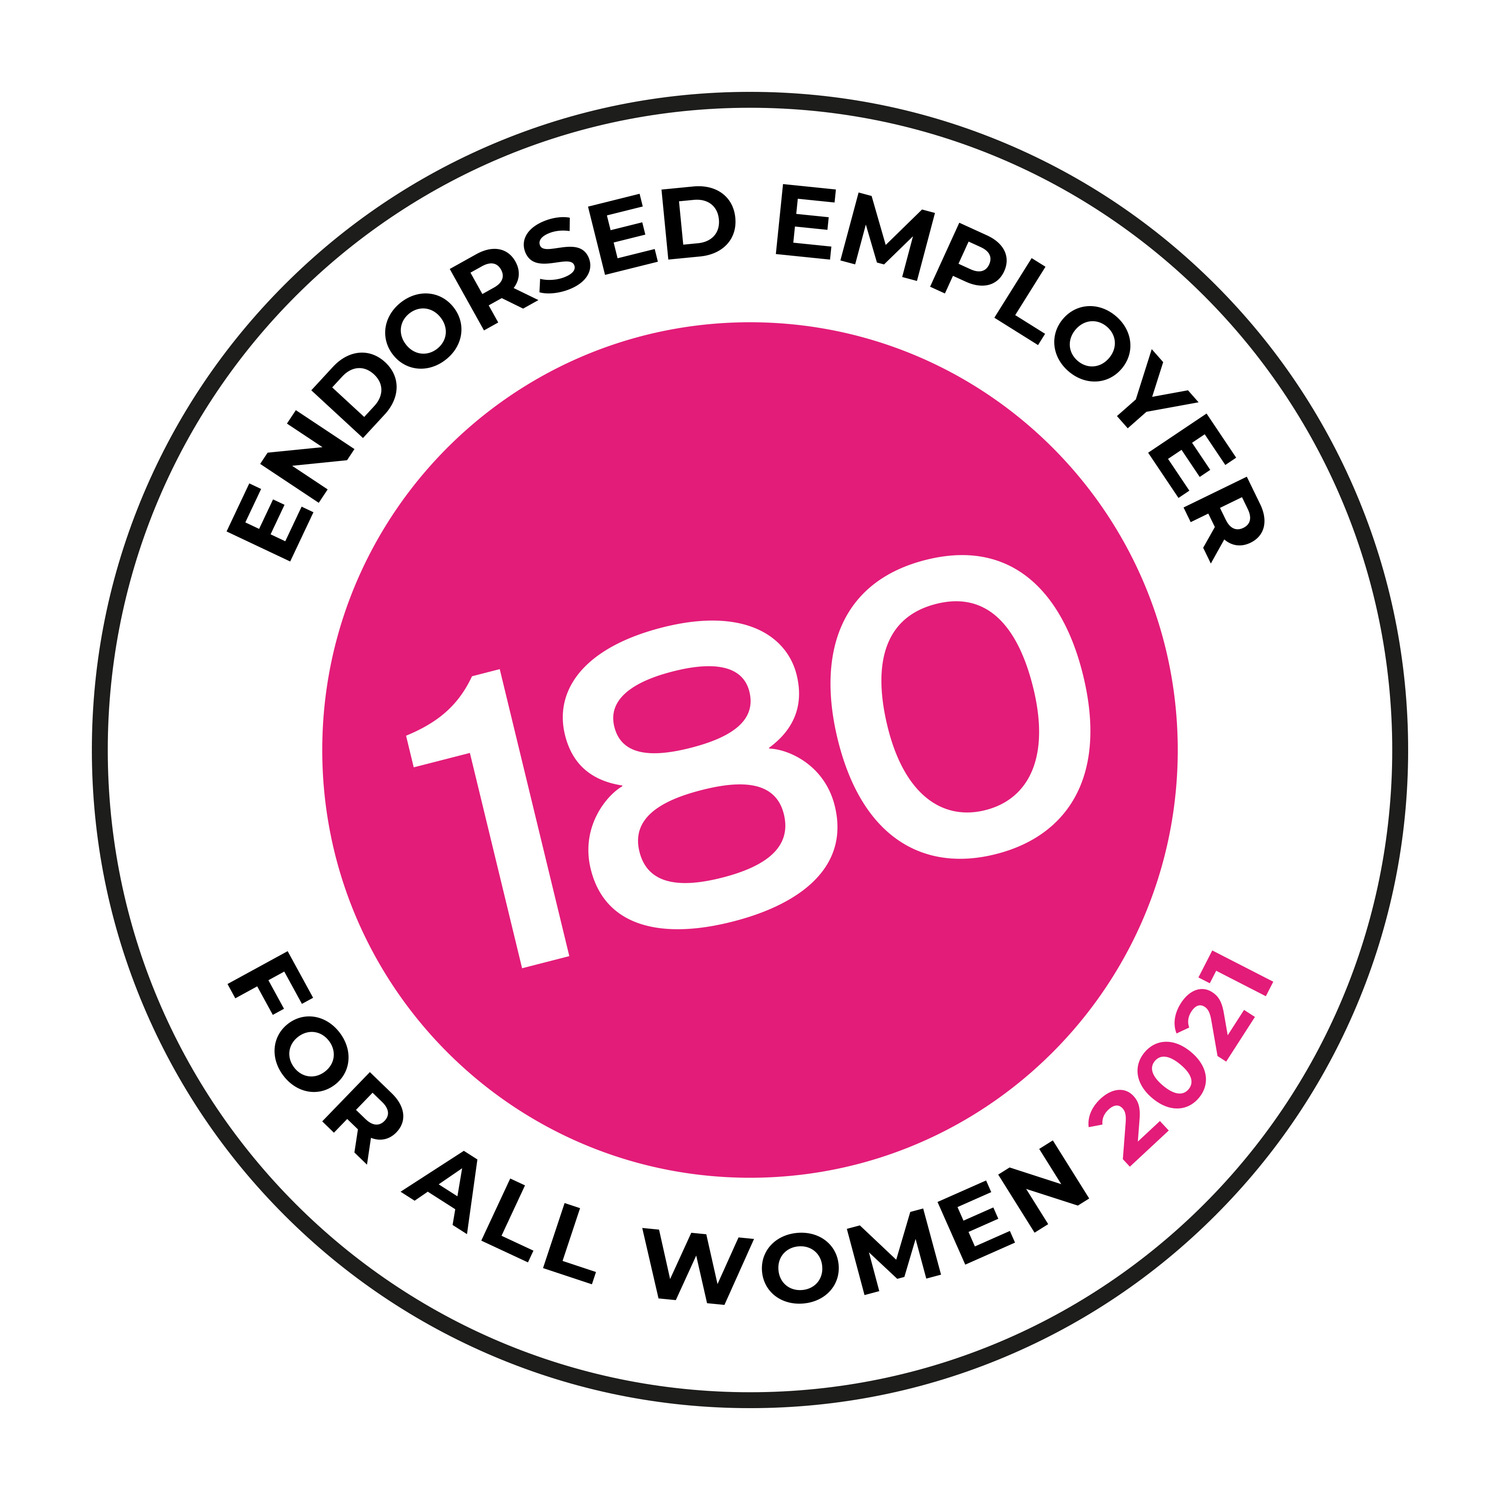 Work 180 endorsement badge